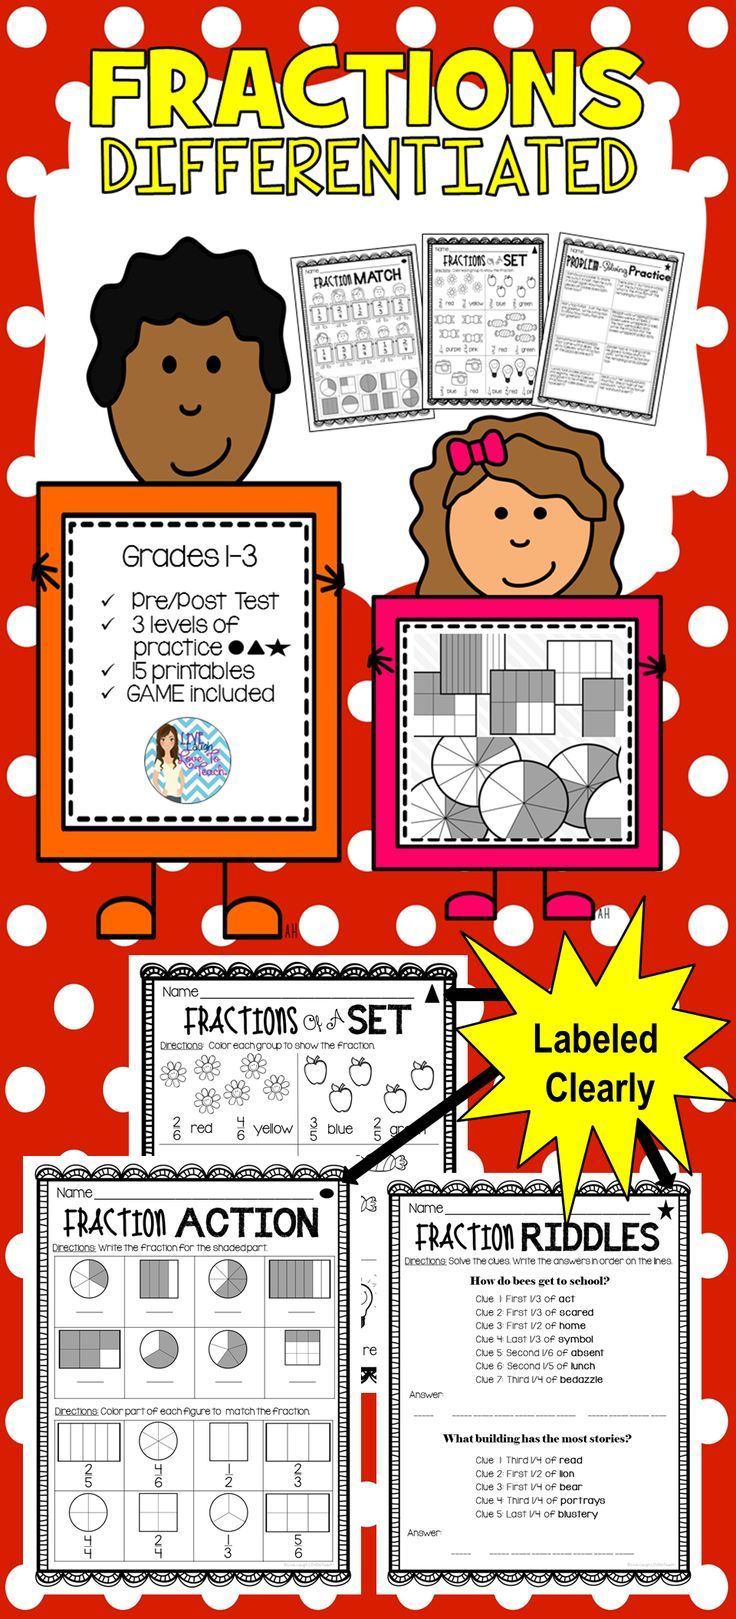 60 best fractions images on Pinterest   Math fractions, Fractions ...